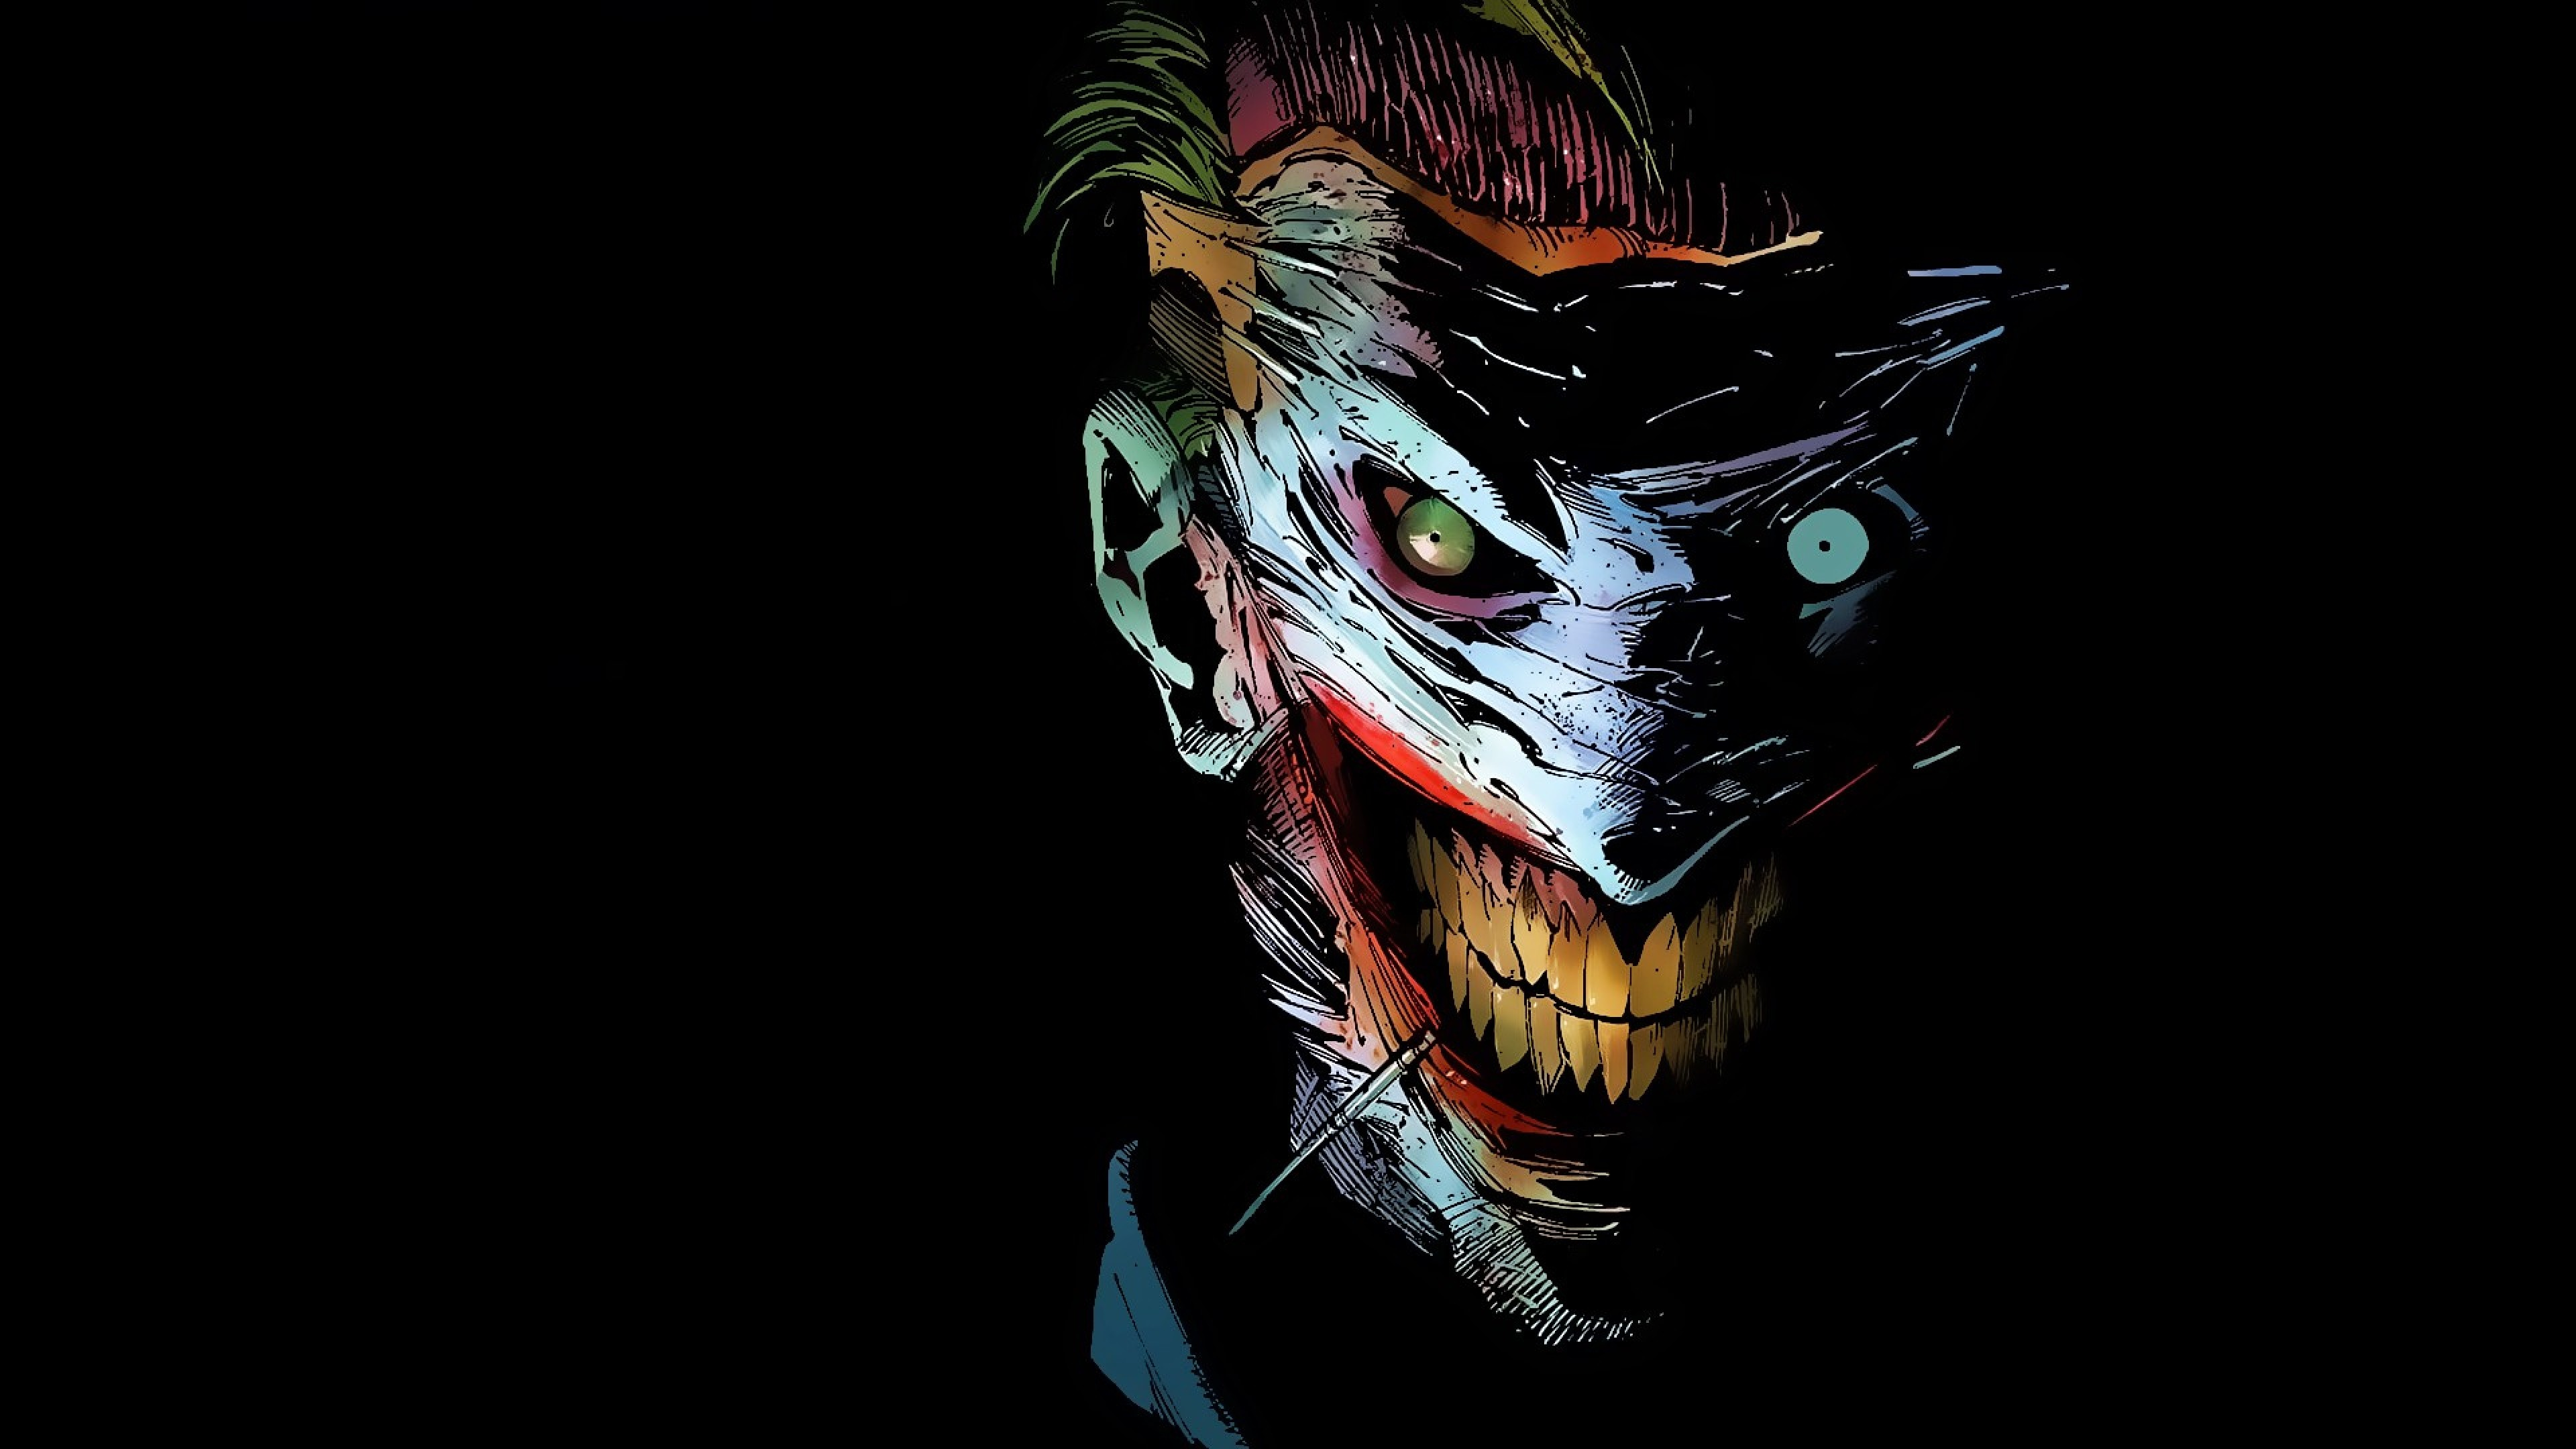 Joker Background 1 Download Free Awesome Full HD Backgrounds For